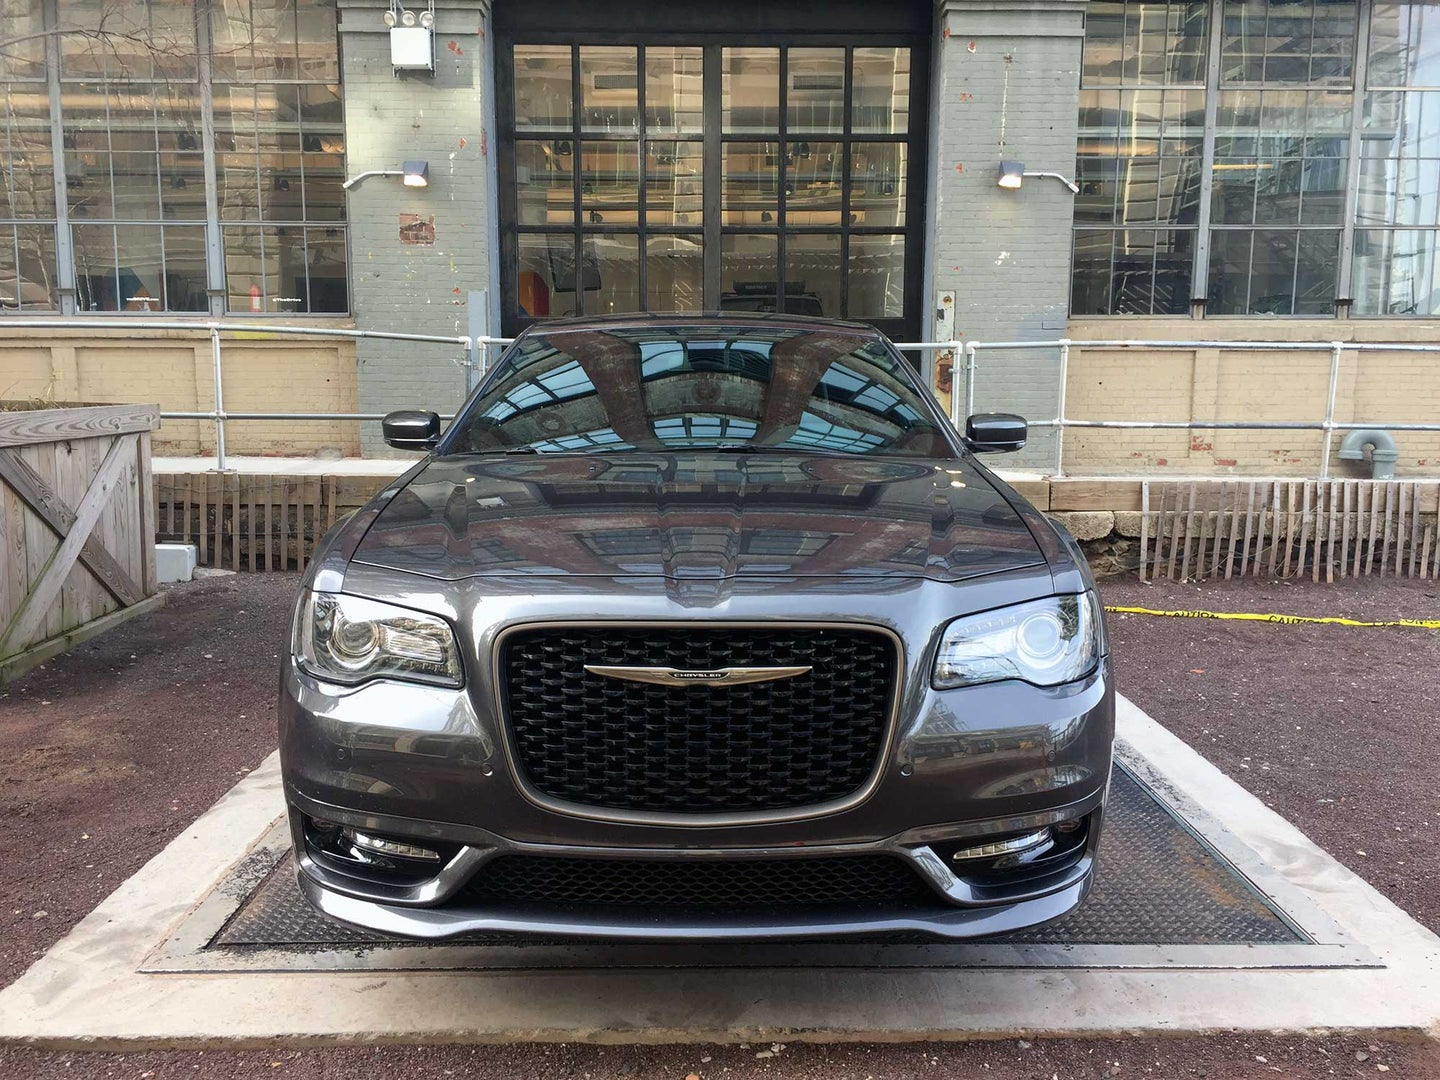 Head-on view of the 2017 Chrysler 300S at The Drive's Brooklyn HQ.